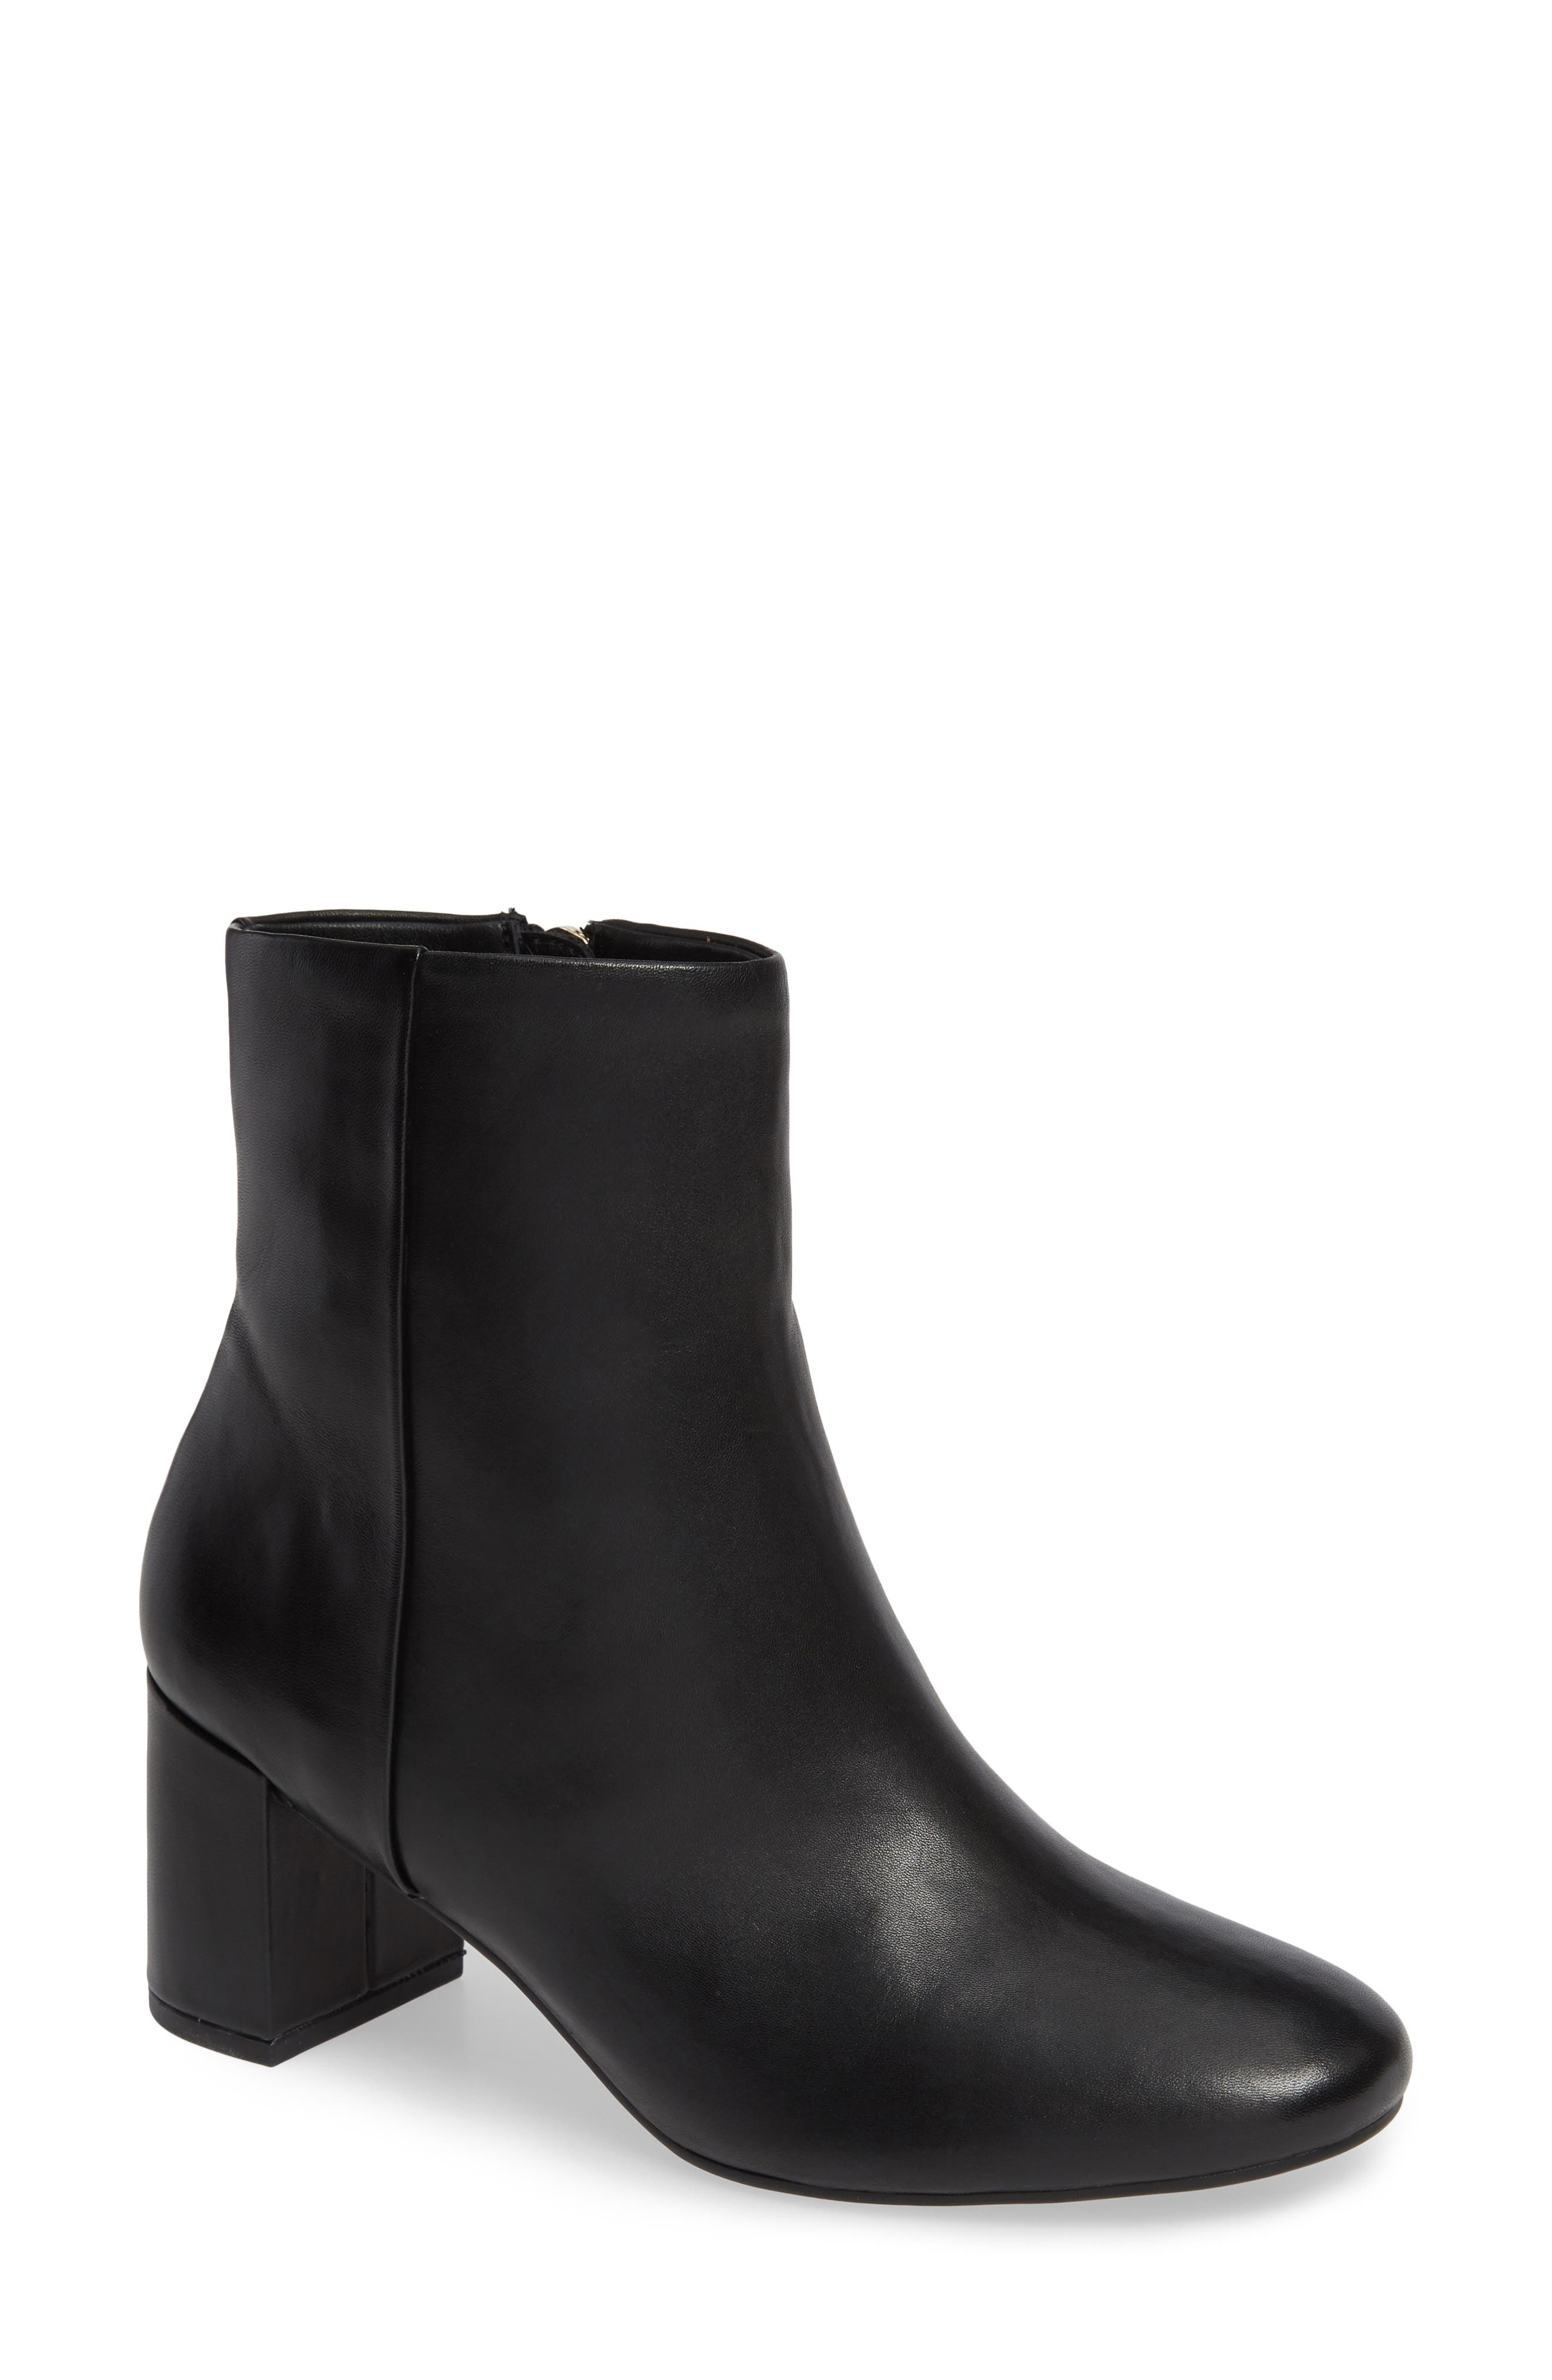 TARYN ROSE Cassidy Leather Ankle Booties in Black Leather